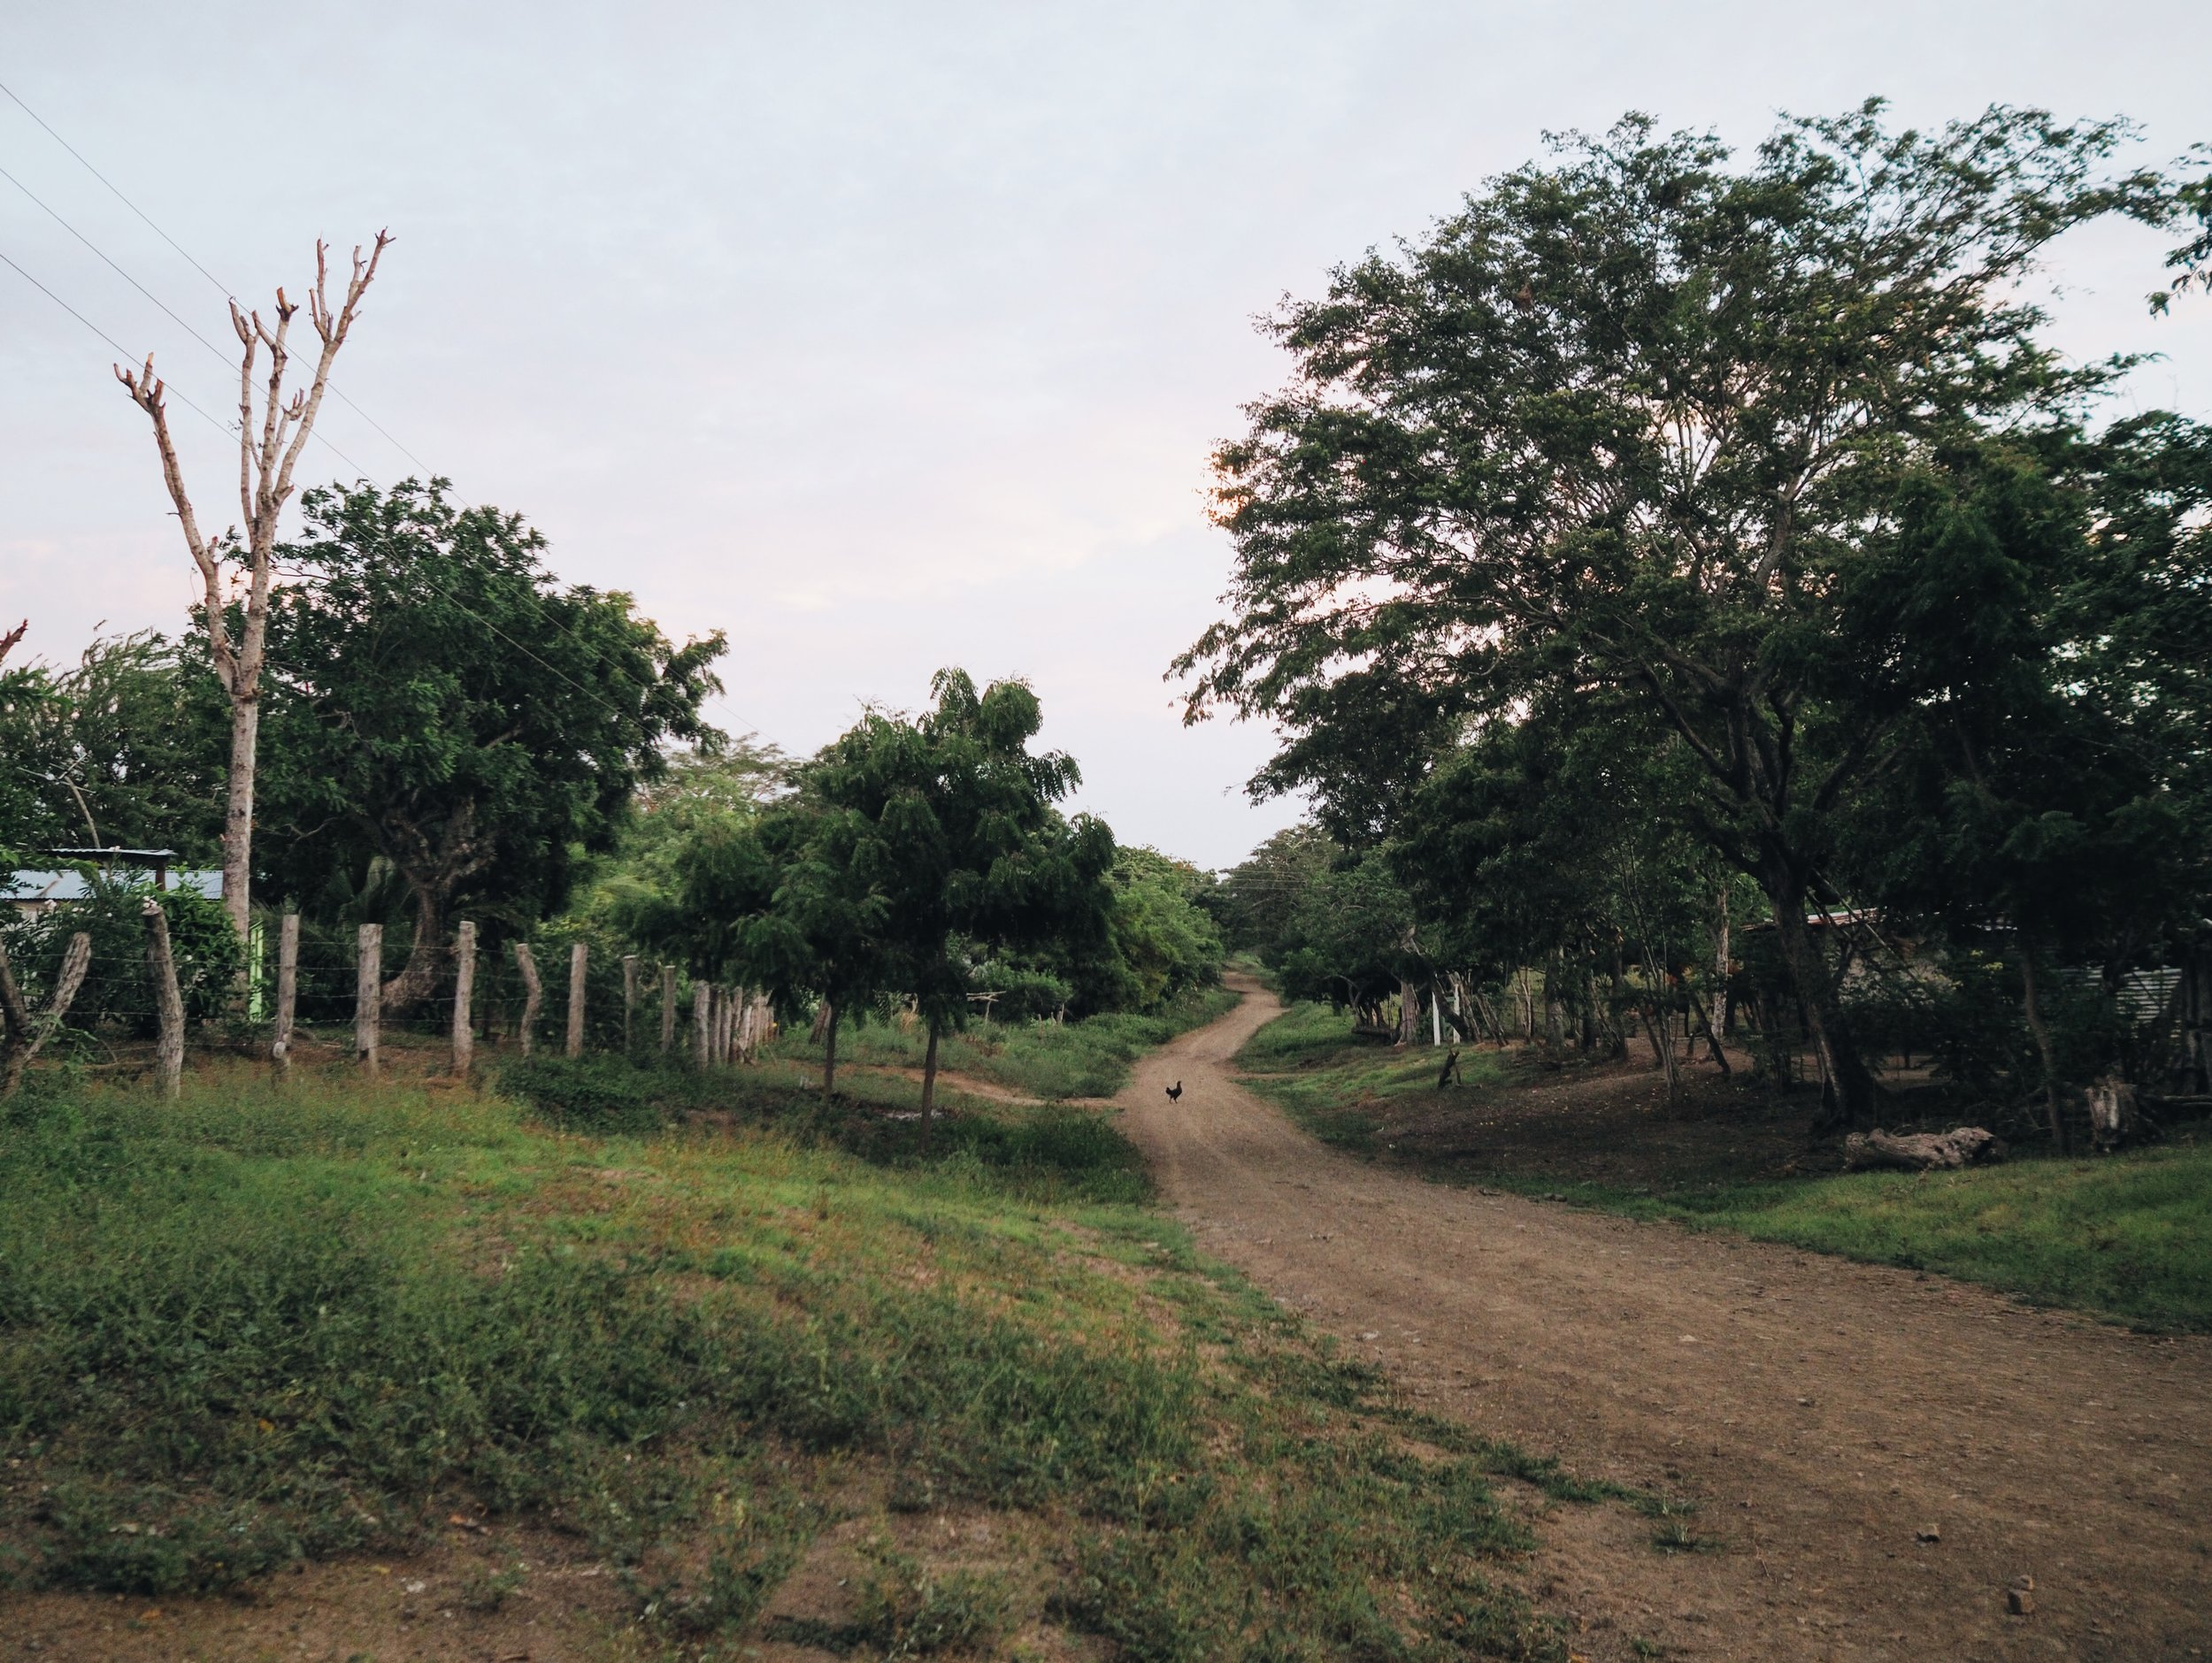 Cycling up the dirt road in Belen, looking for a lady named Diana